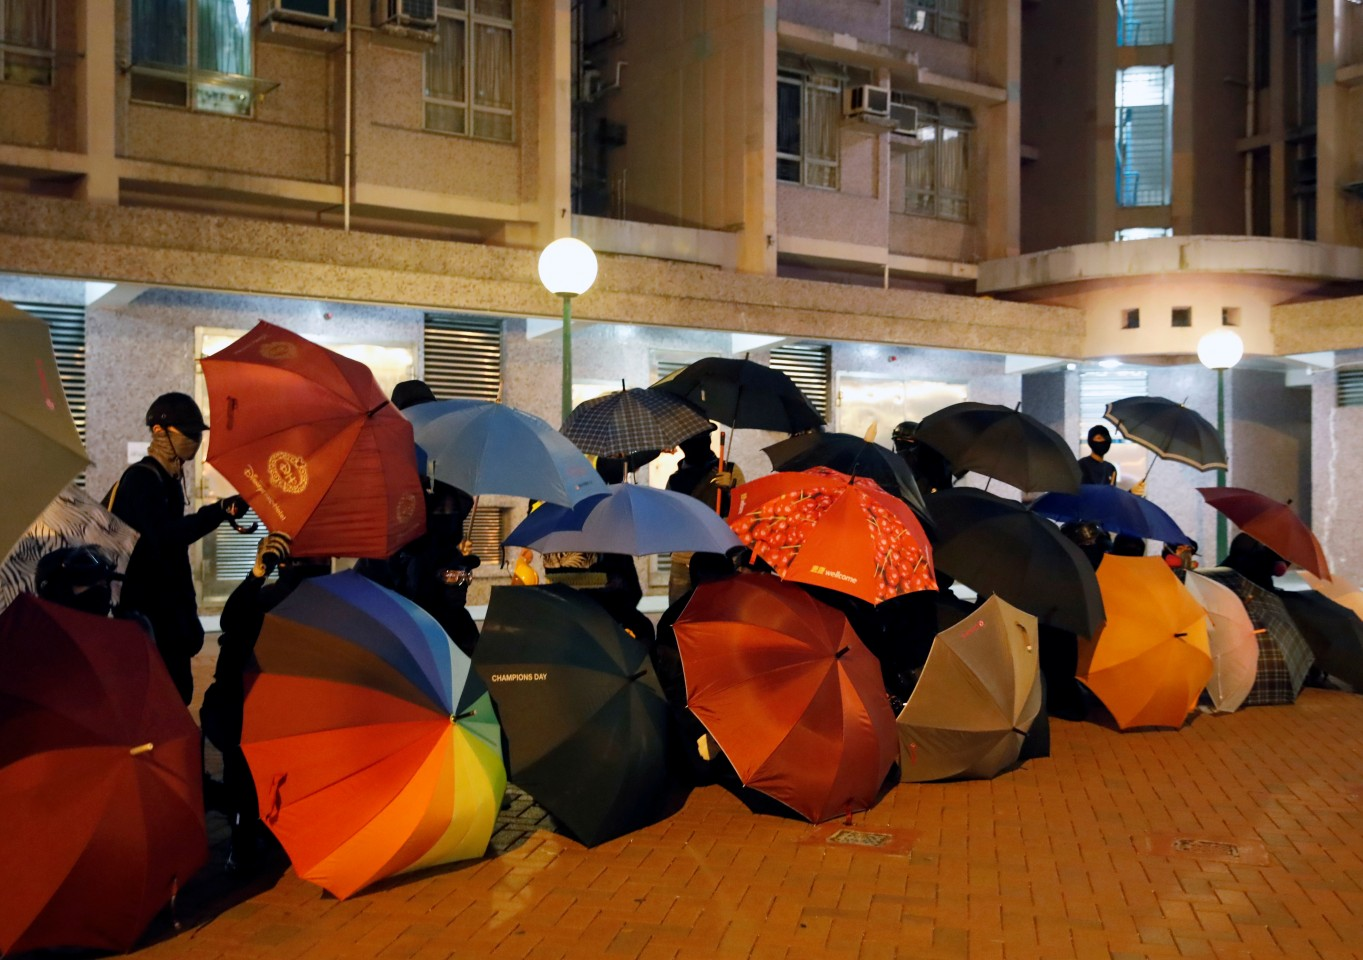 Anti-government protesters shield themselves with umbrellas during a protest in Hong Kong on 8 January 2020. (Navesh Chitrakar/Reuters)